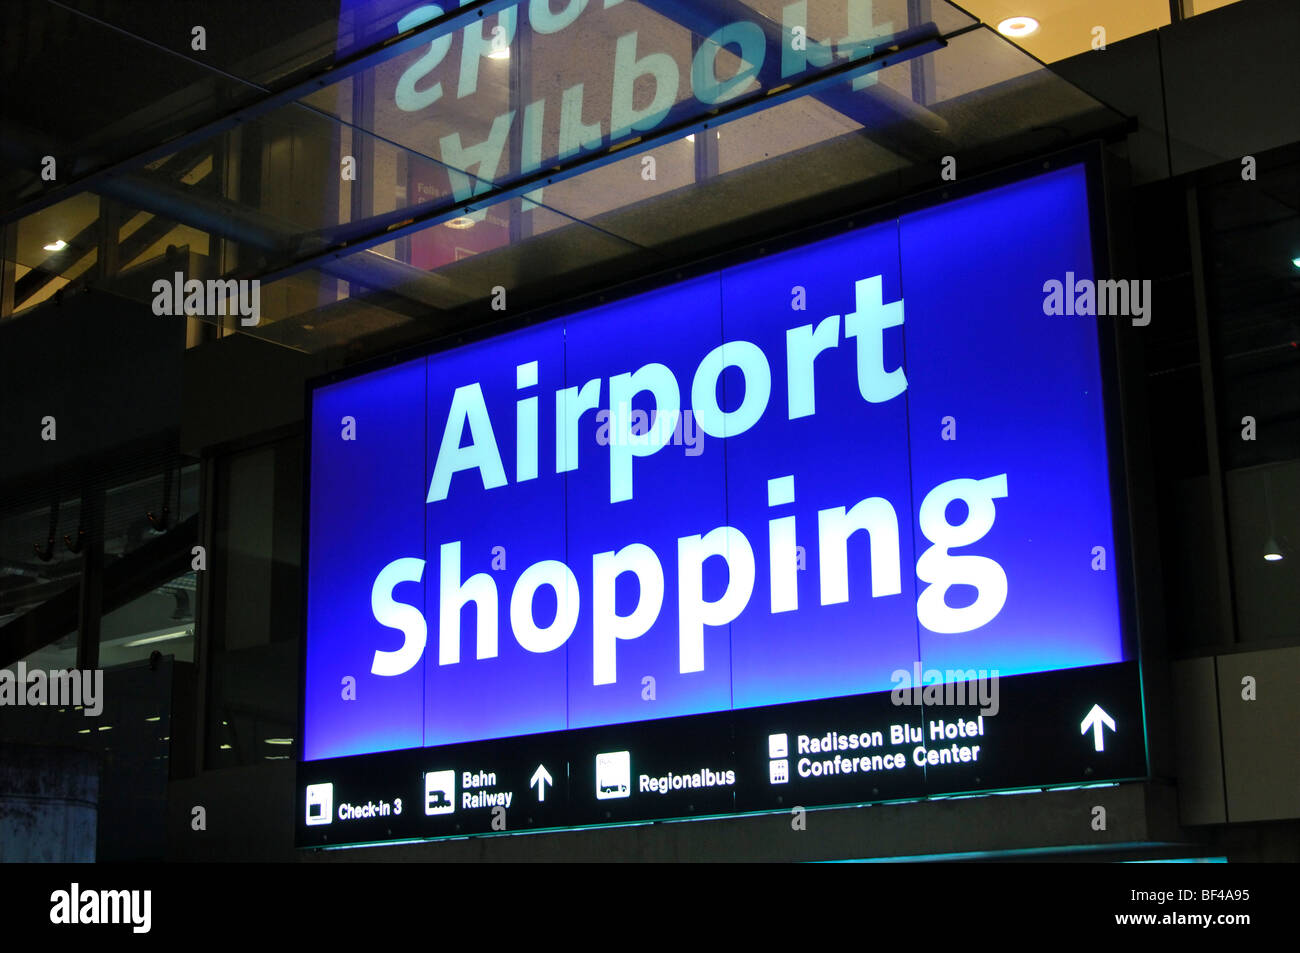 Neon sign at the entrance to the Airport Shopping Arcade at the Airport Zurich-Kloten, Zurich, Switzerland, Europe - Stock Image